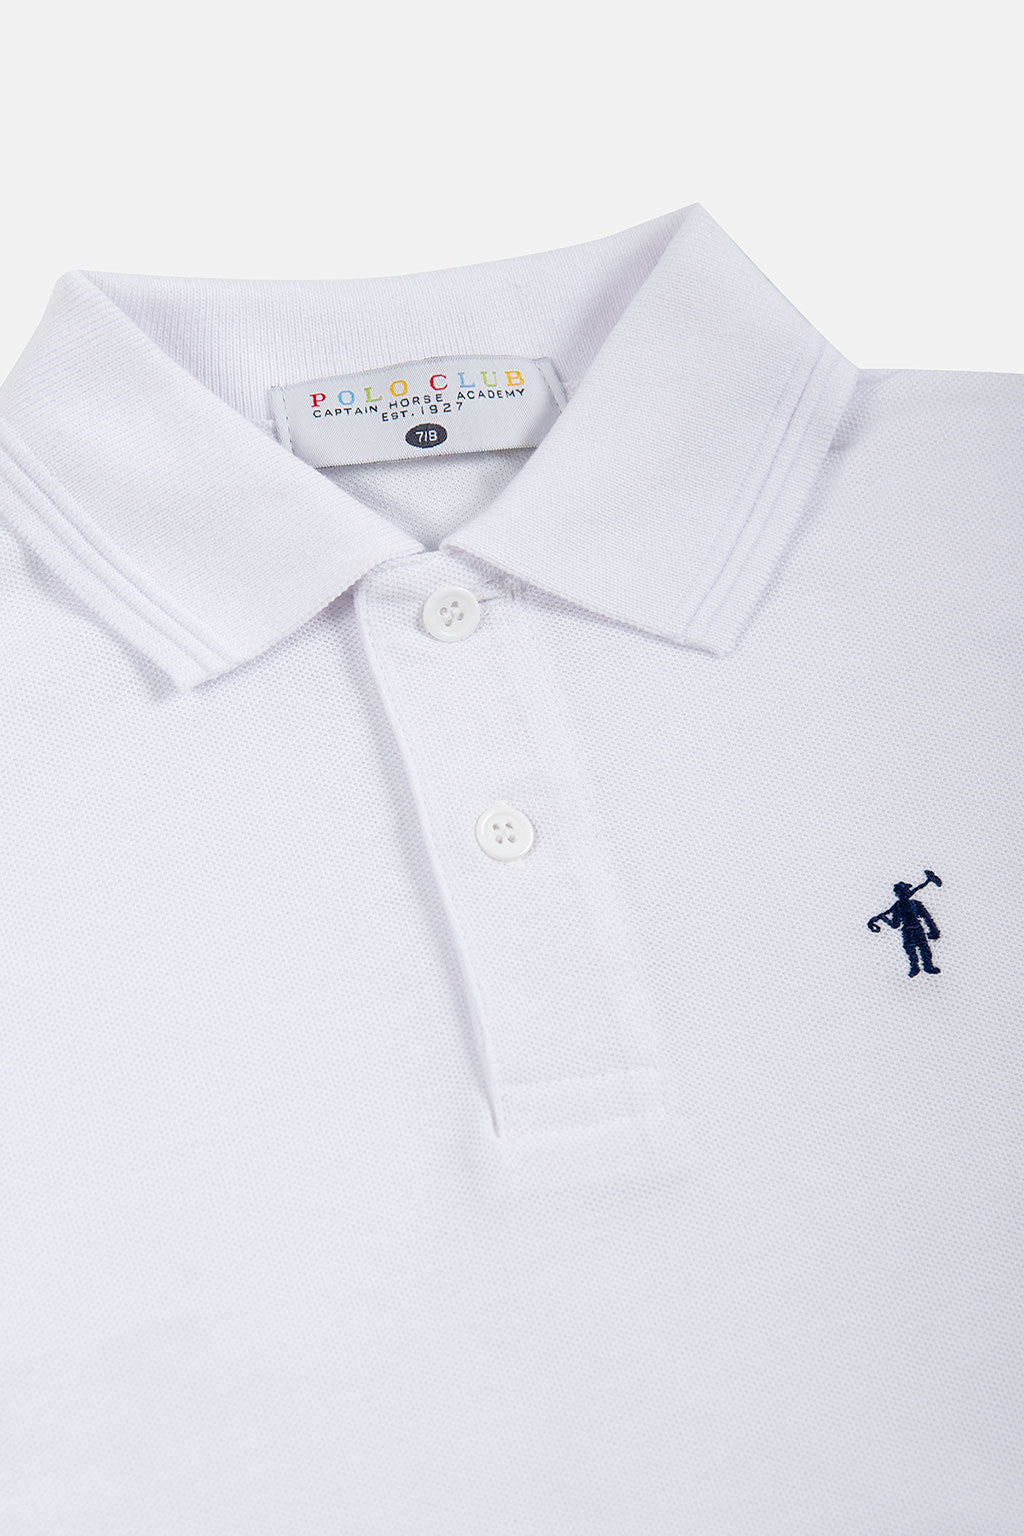 Polo de manga larga blanco con bordado